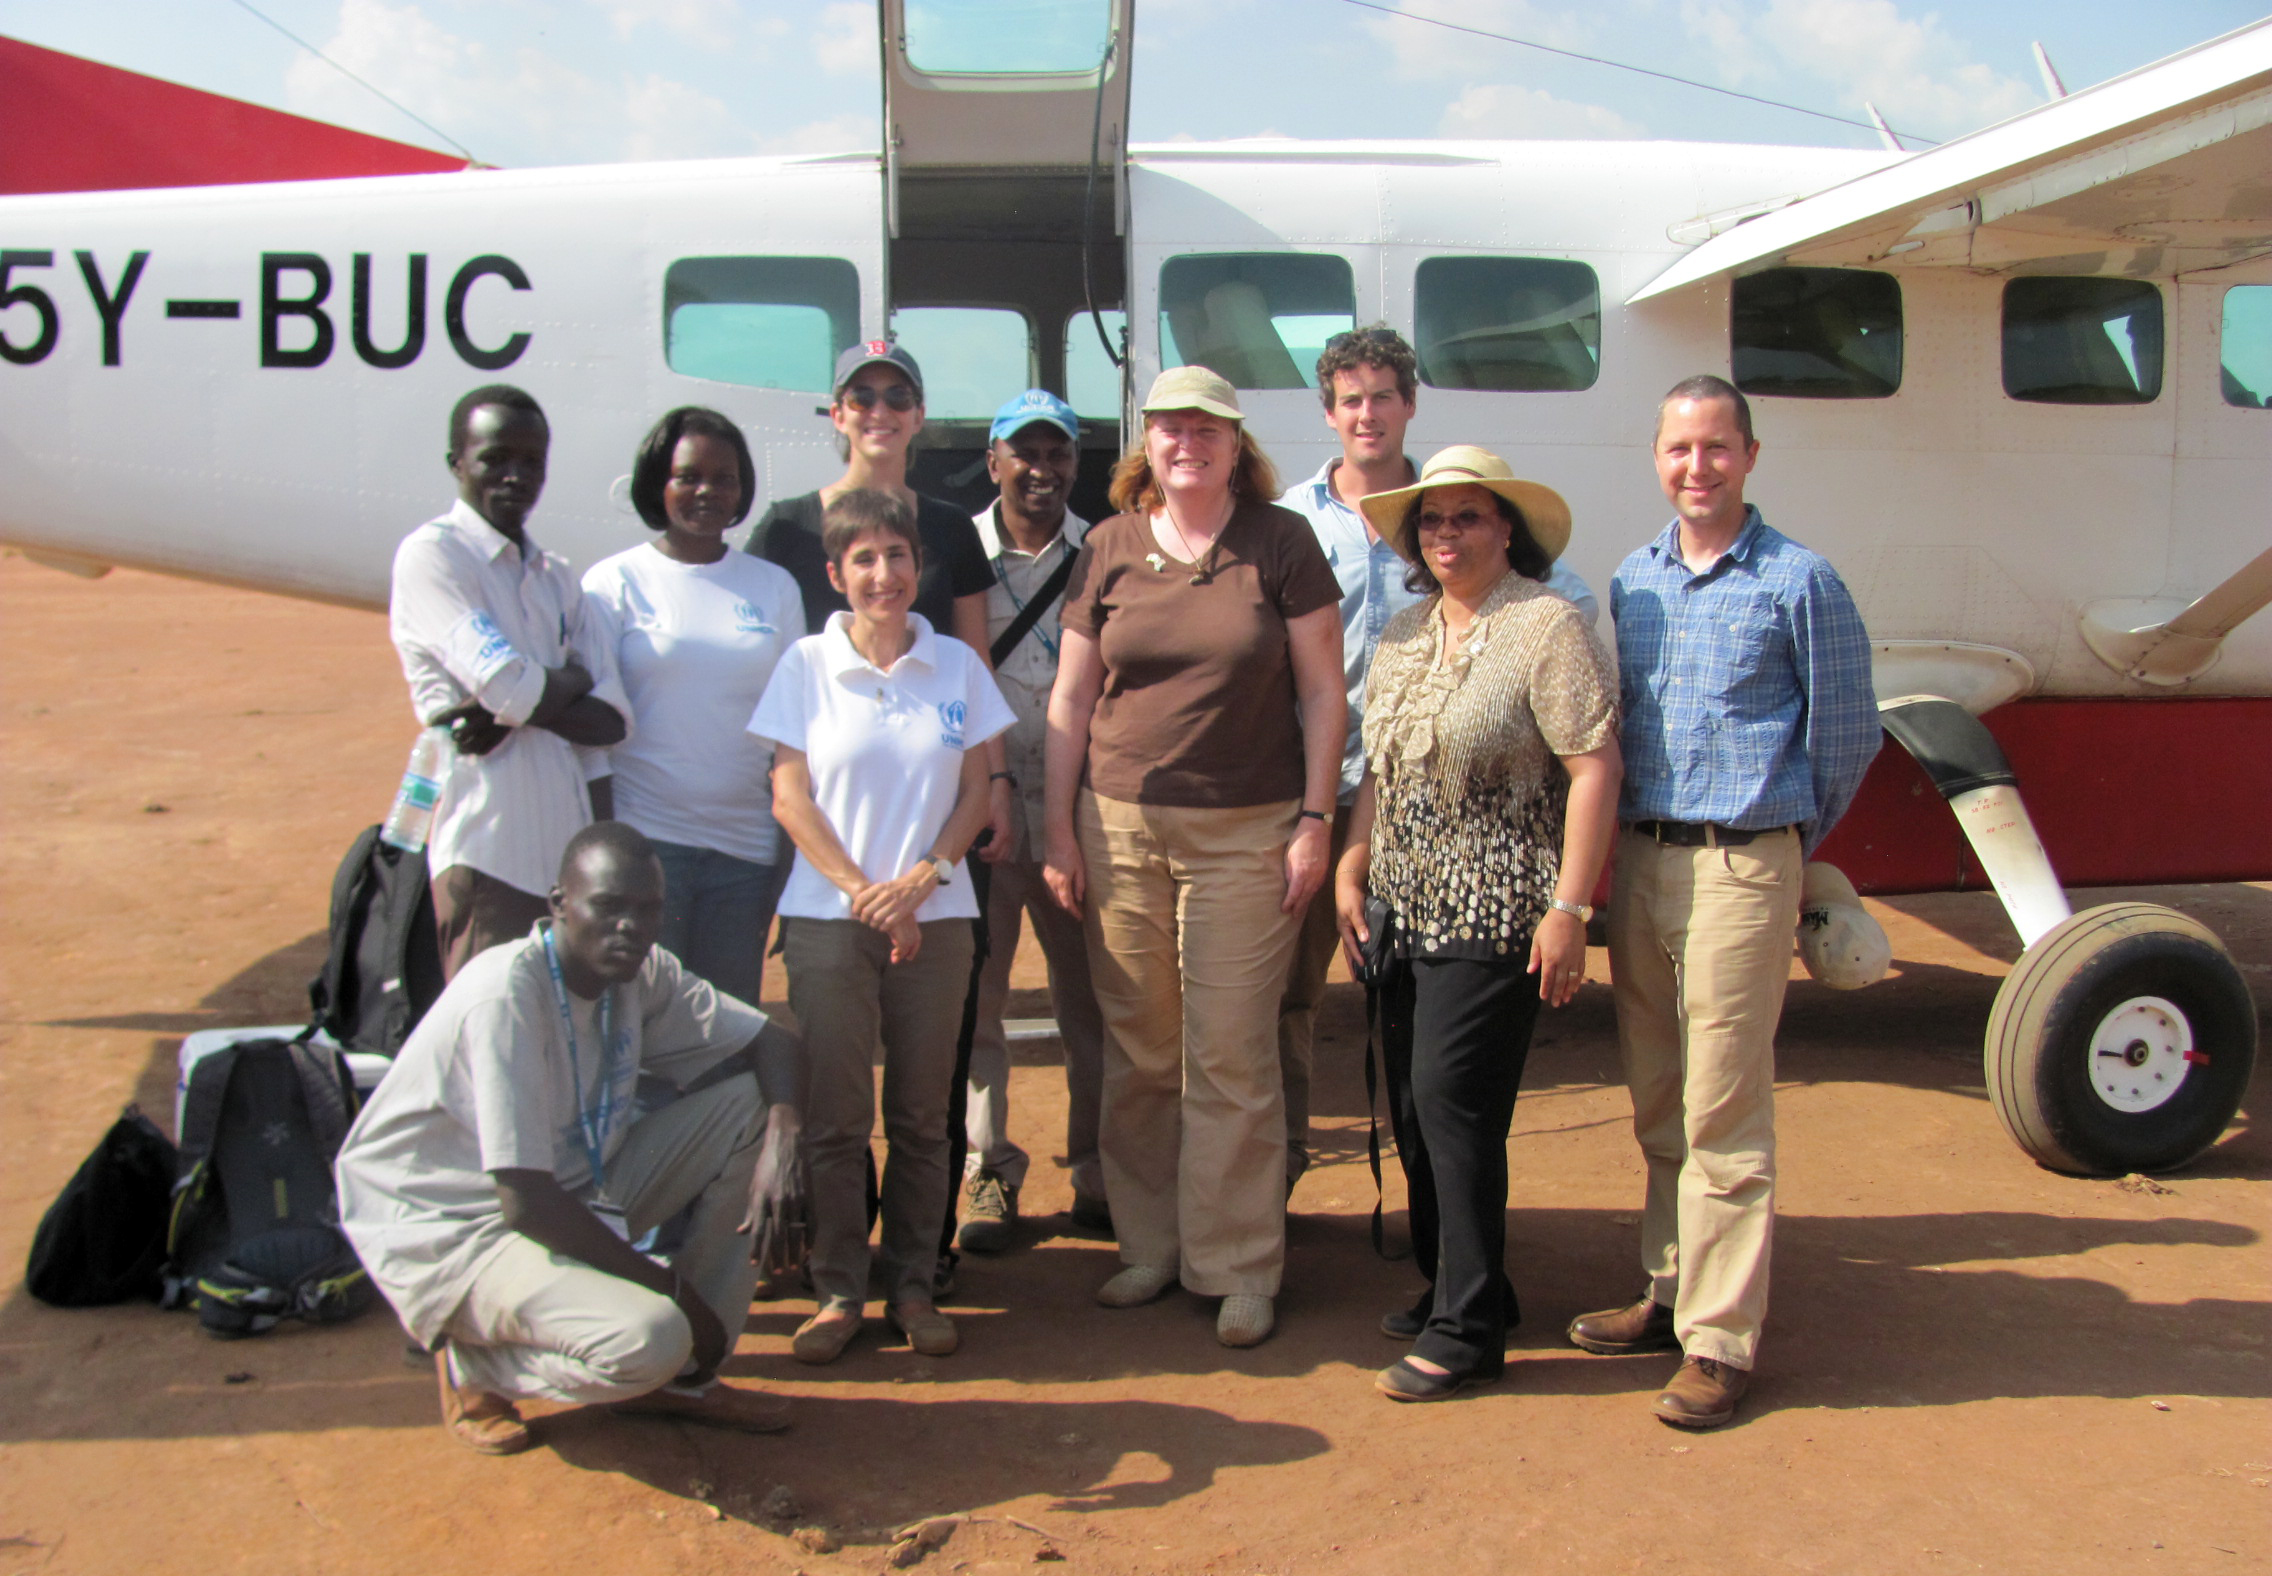 susan page colleagues airplane